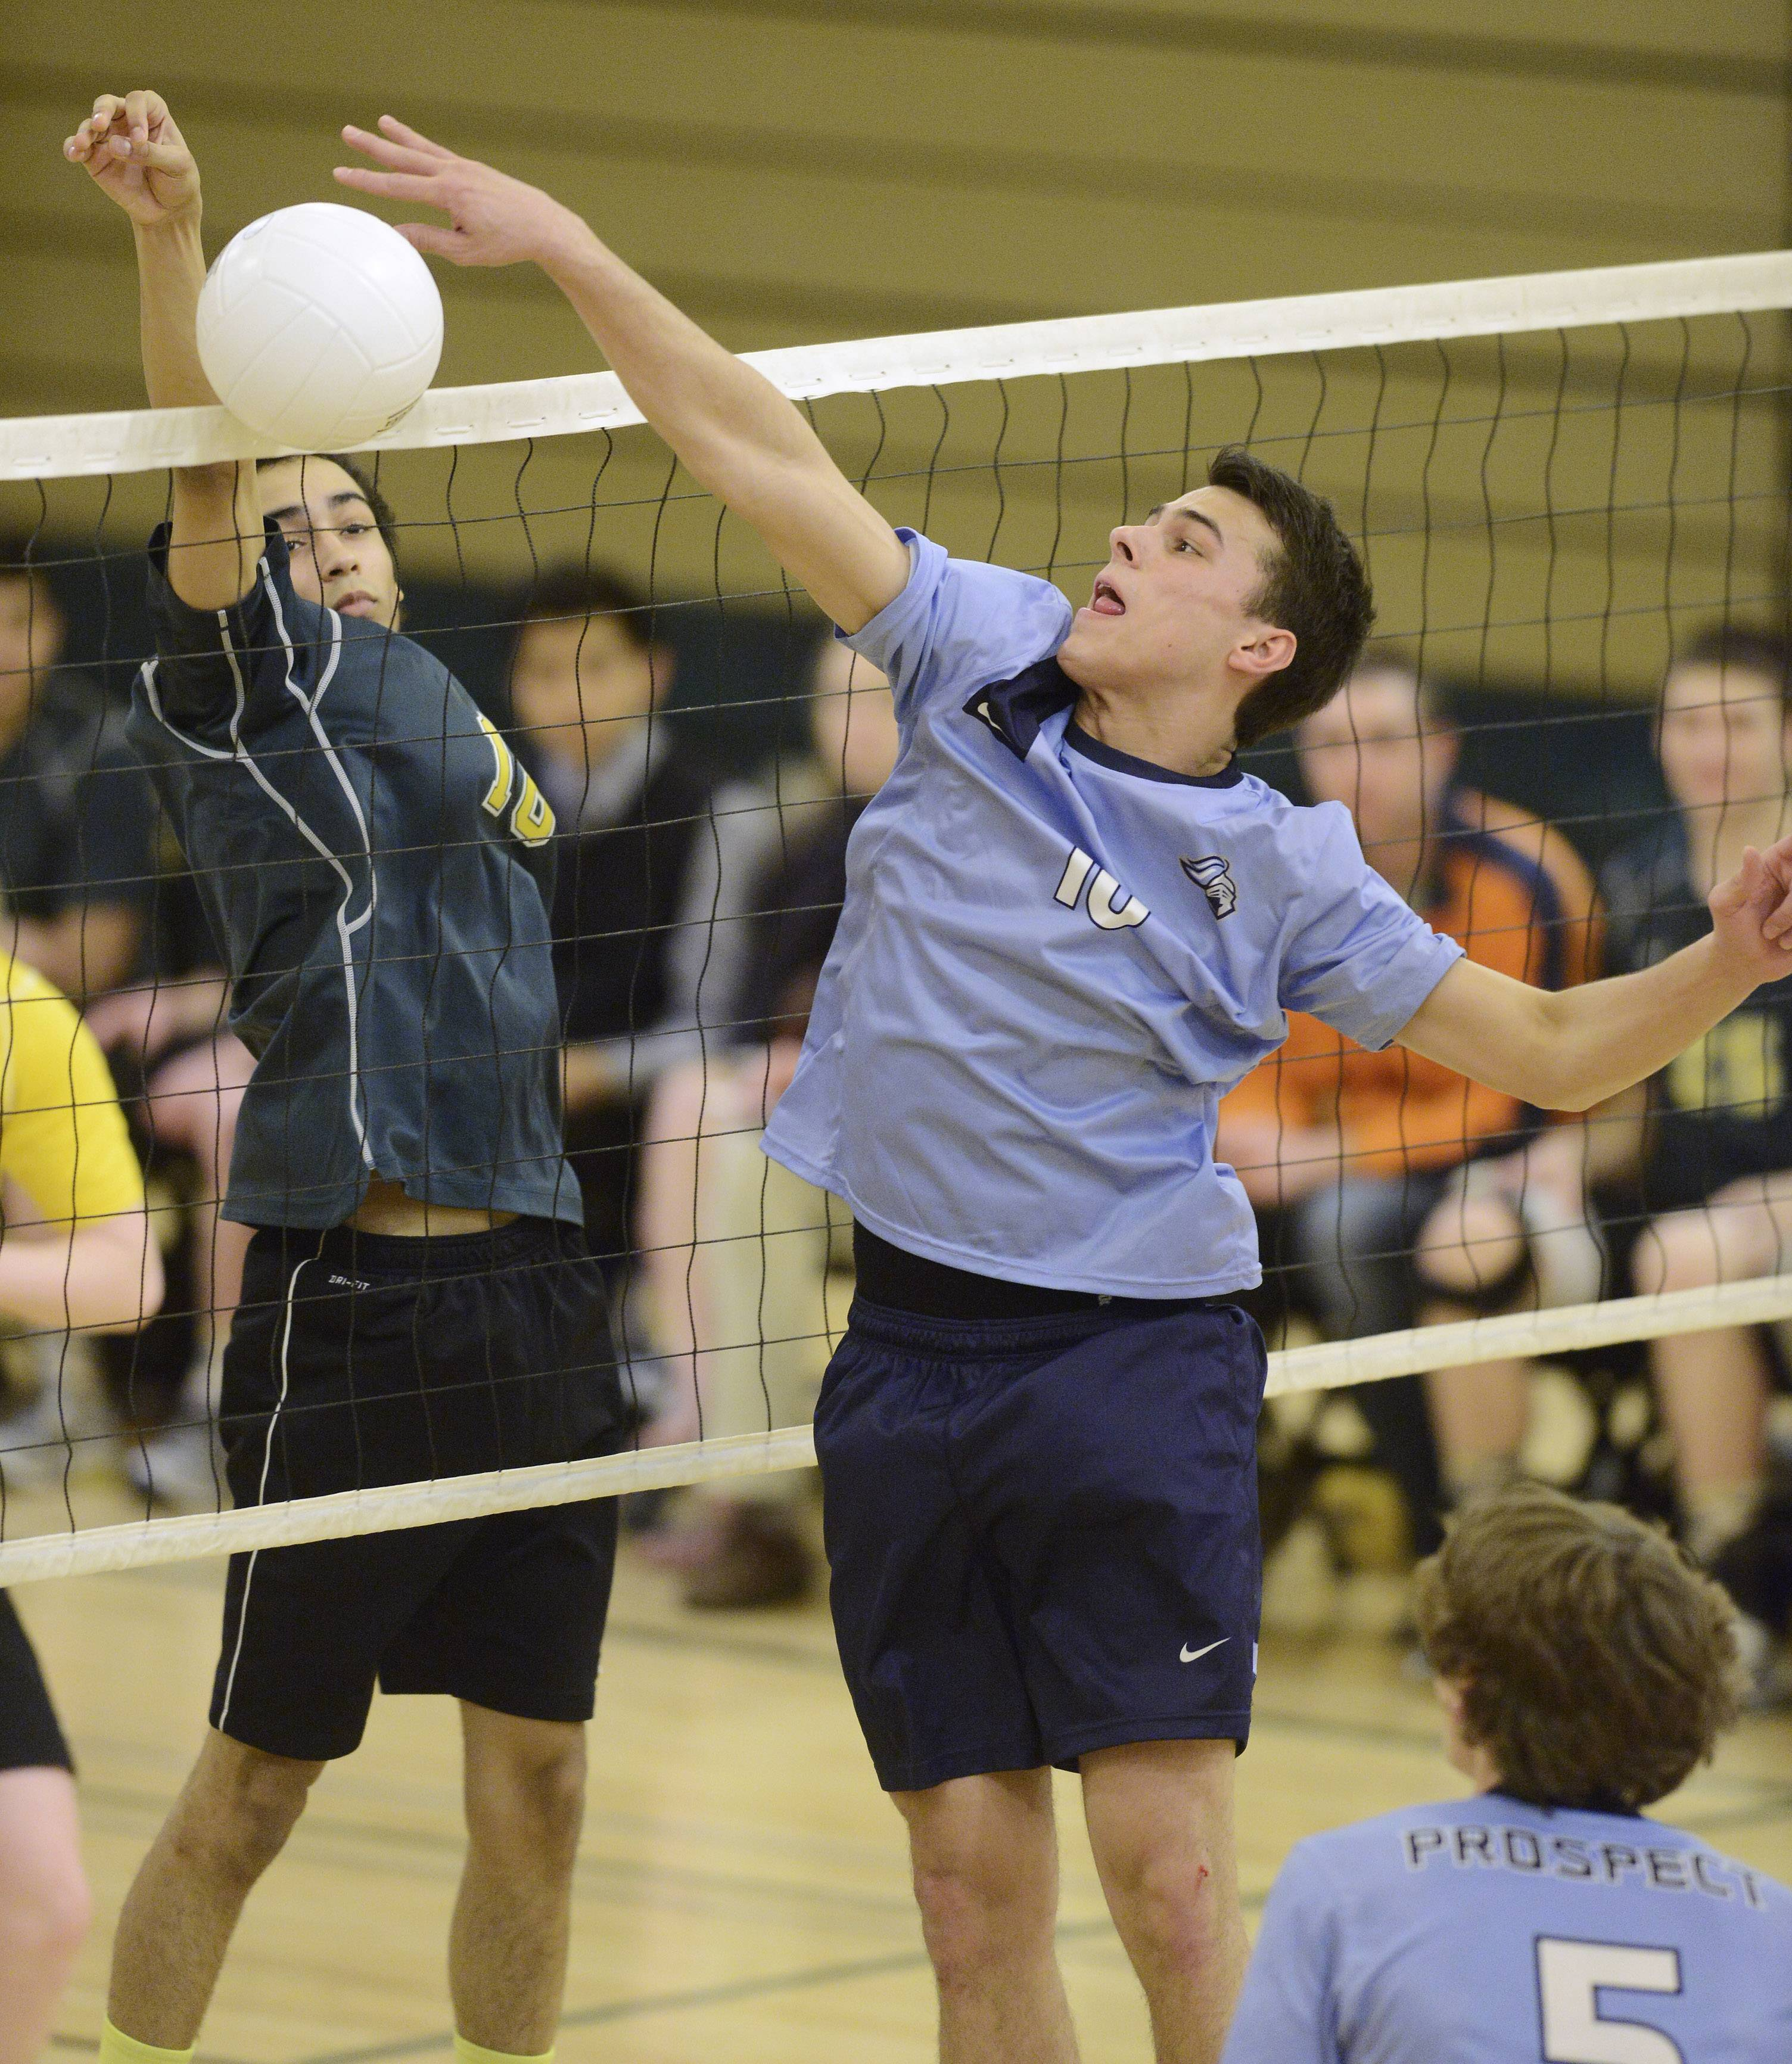 Prospect's Jacob Schwister, right, tries to tap the ball over the net in front of Elk Grove's Justin Jimenez Tuesday.